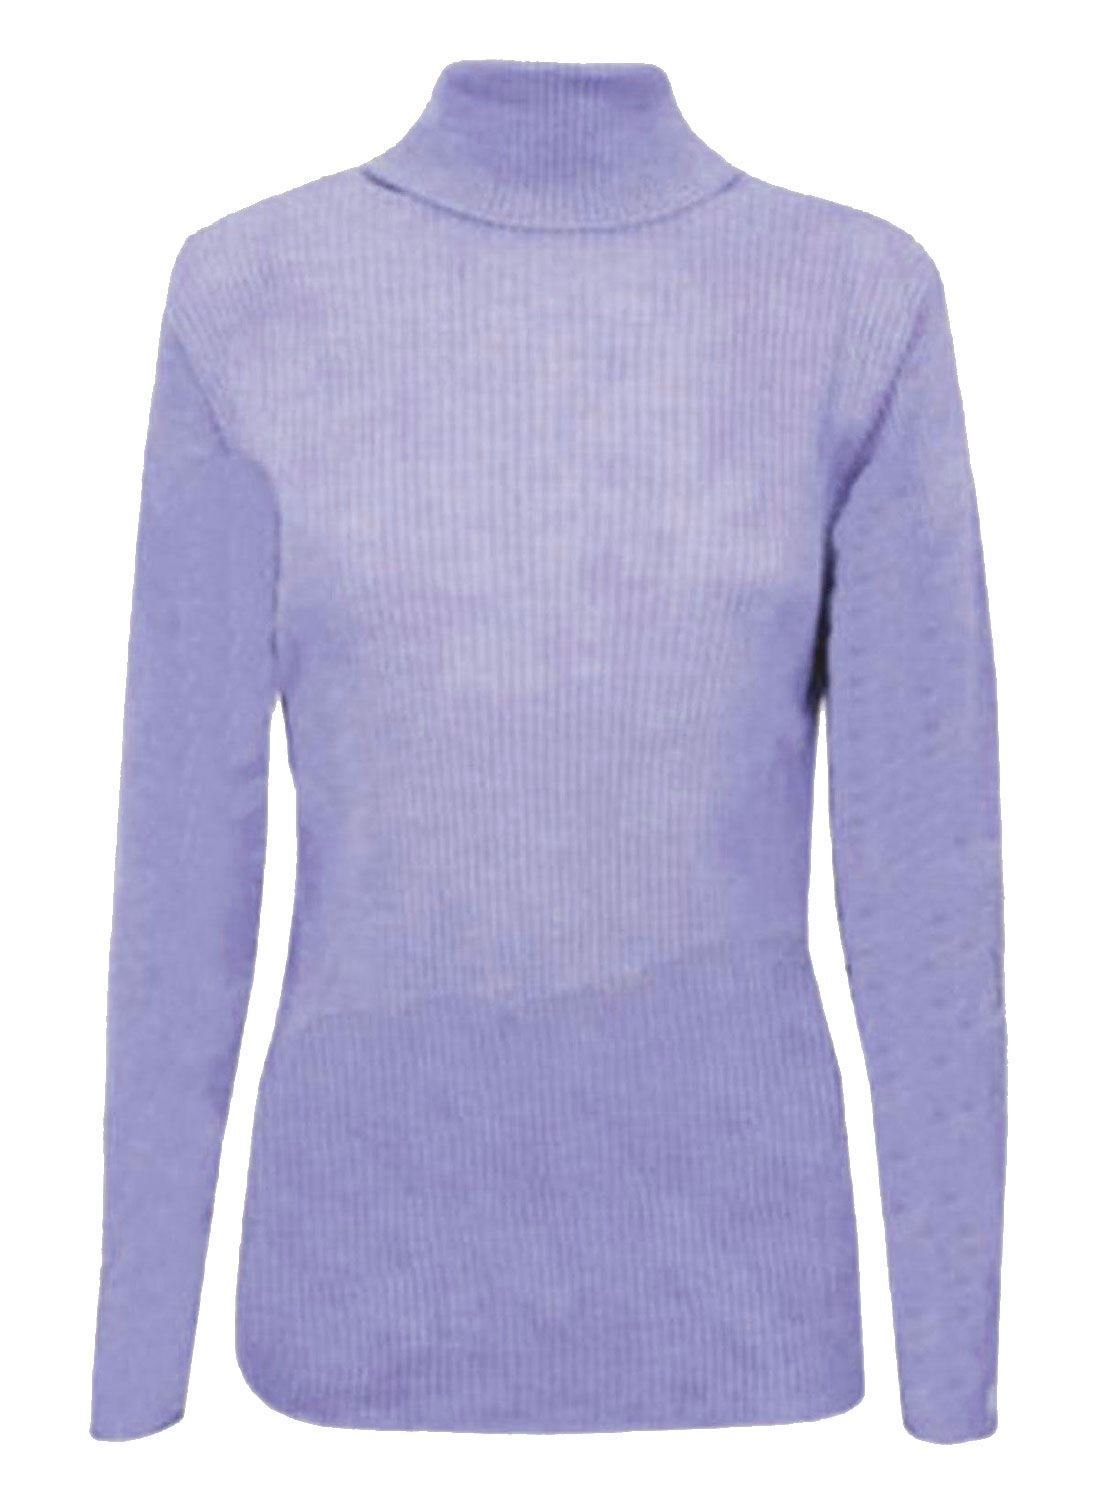 REAL LIFE FASHION LTD Womens Polo Turtle Neck Ribbed Jumper Top Ladies Full Sleeve Stretch Jumper Top#(Lilac Ribbed Polo Neck Jumper#US 20-22#Womens) by REAL LIFE FASHION LTD